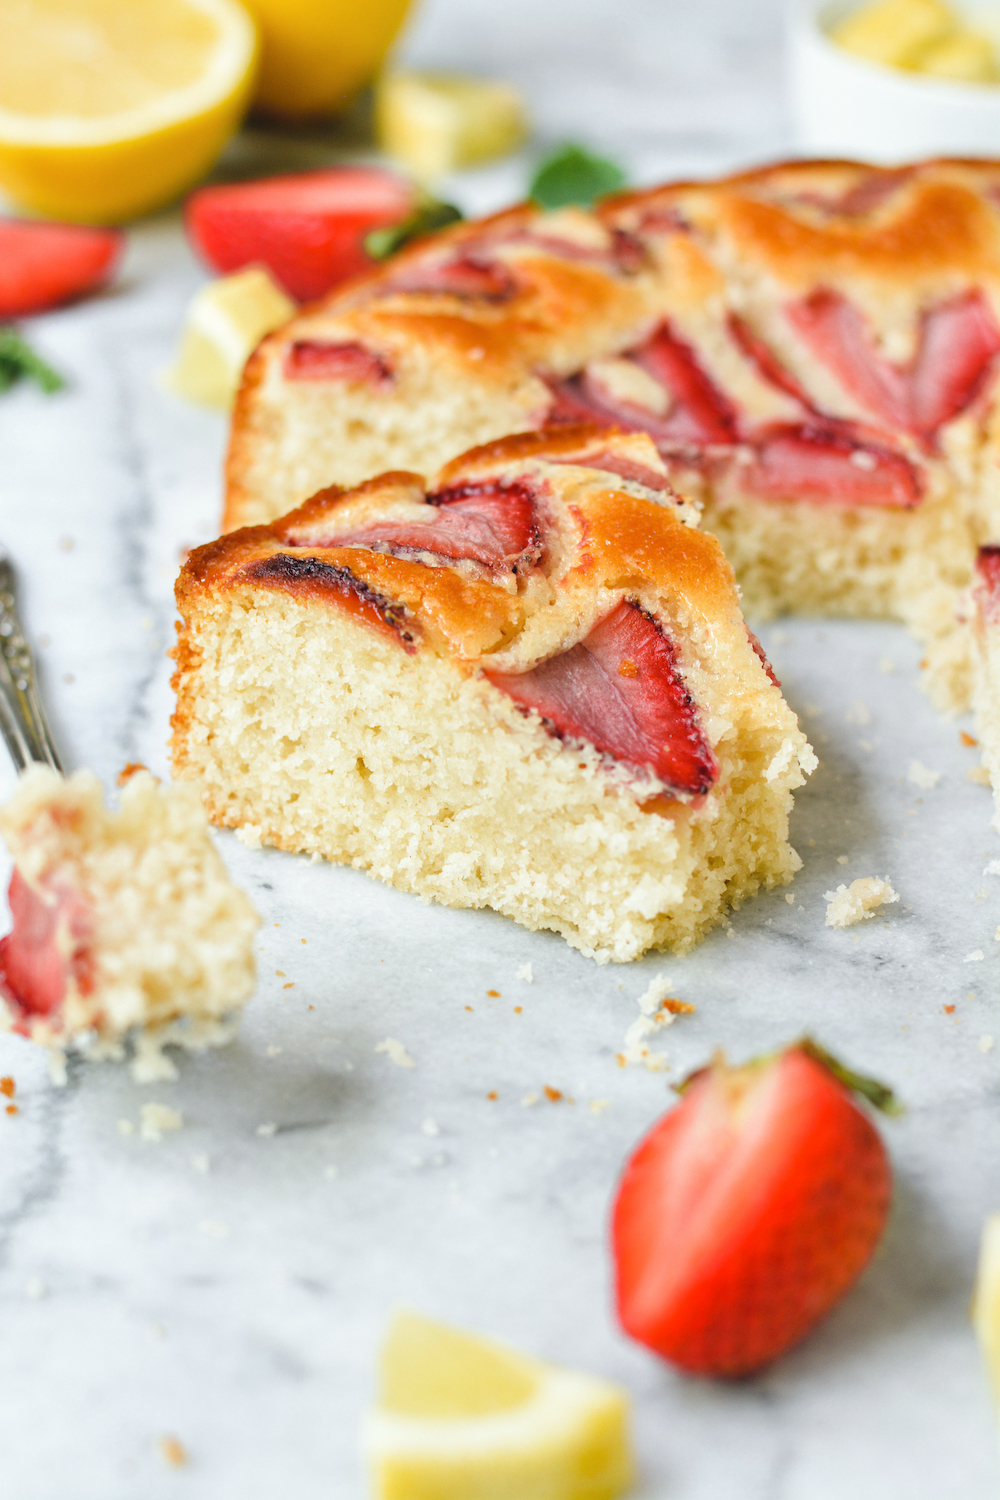 lemon snack cake with strawberries - bethcakes.com